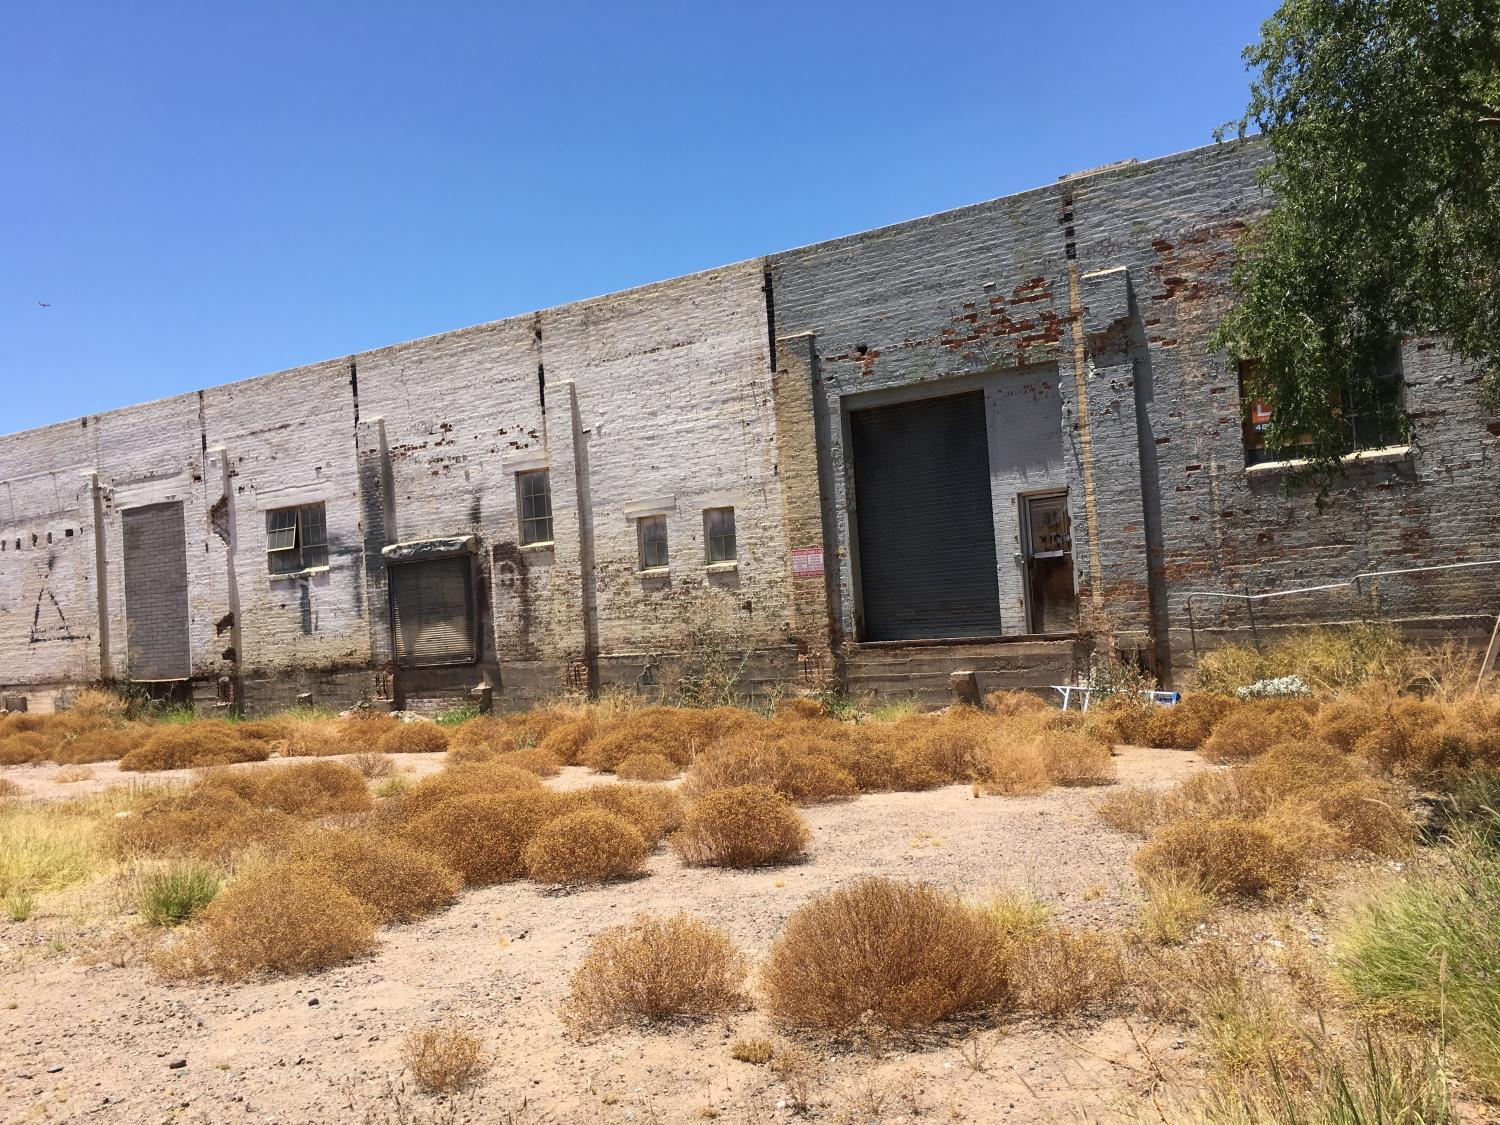 empty lots next to former warehouse